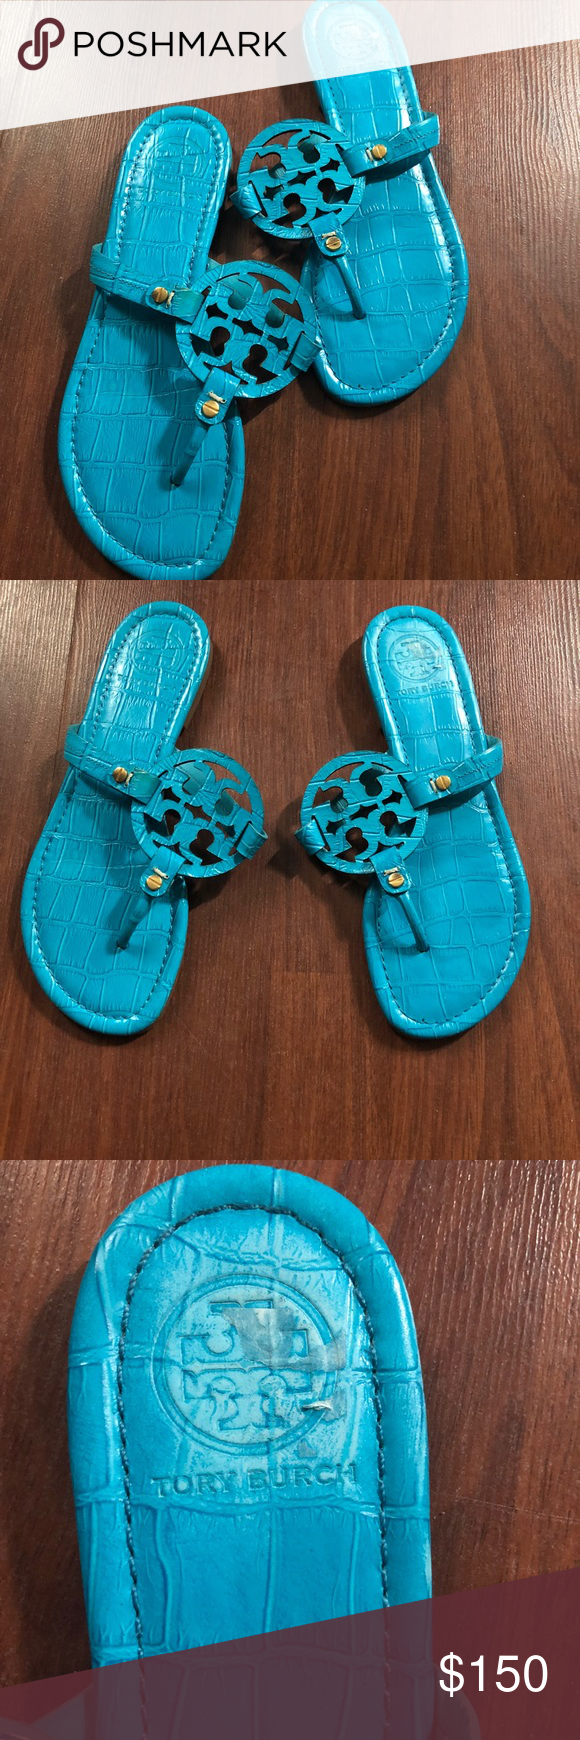 1a799d406 Rare Tory Burch Turquoise Miller Sandals. 💙 Rare Tory Burch Miller Croc  embossed Miller sandals